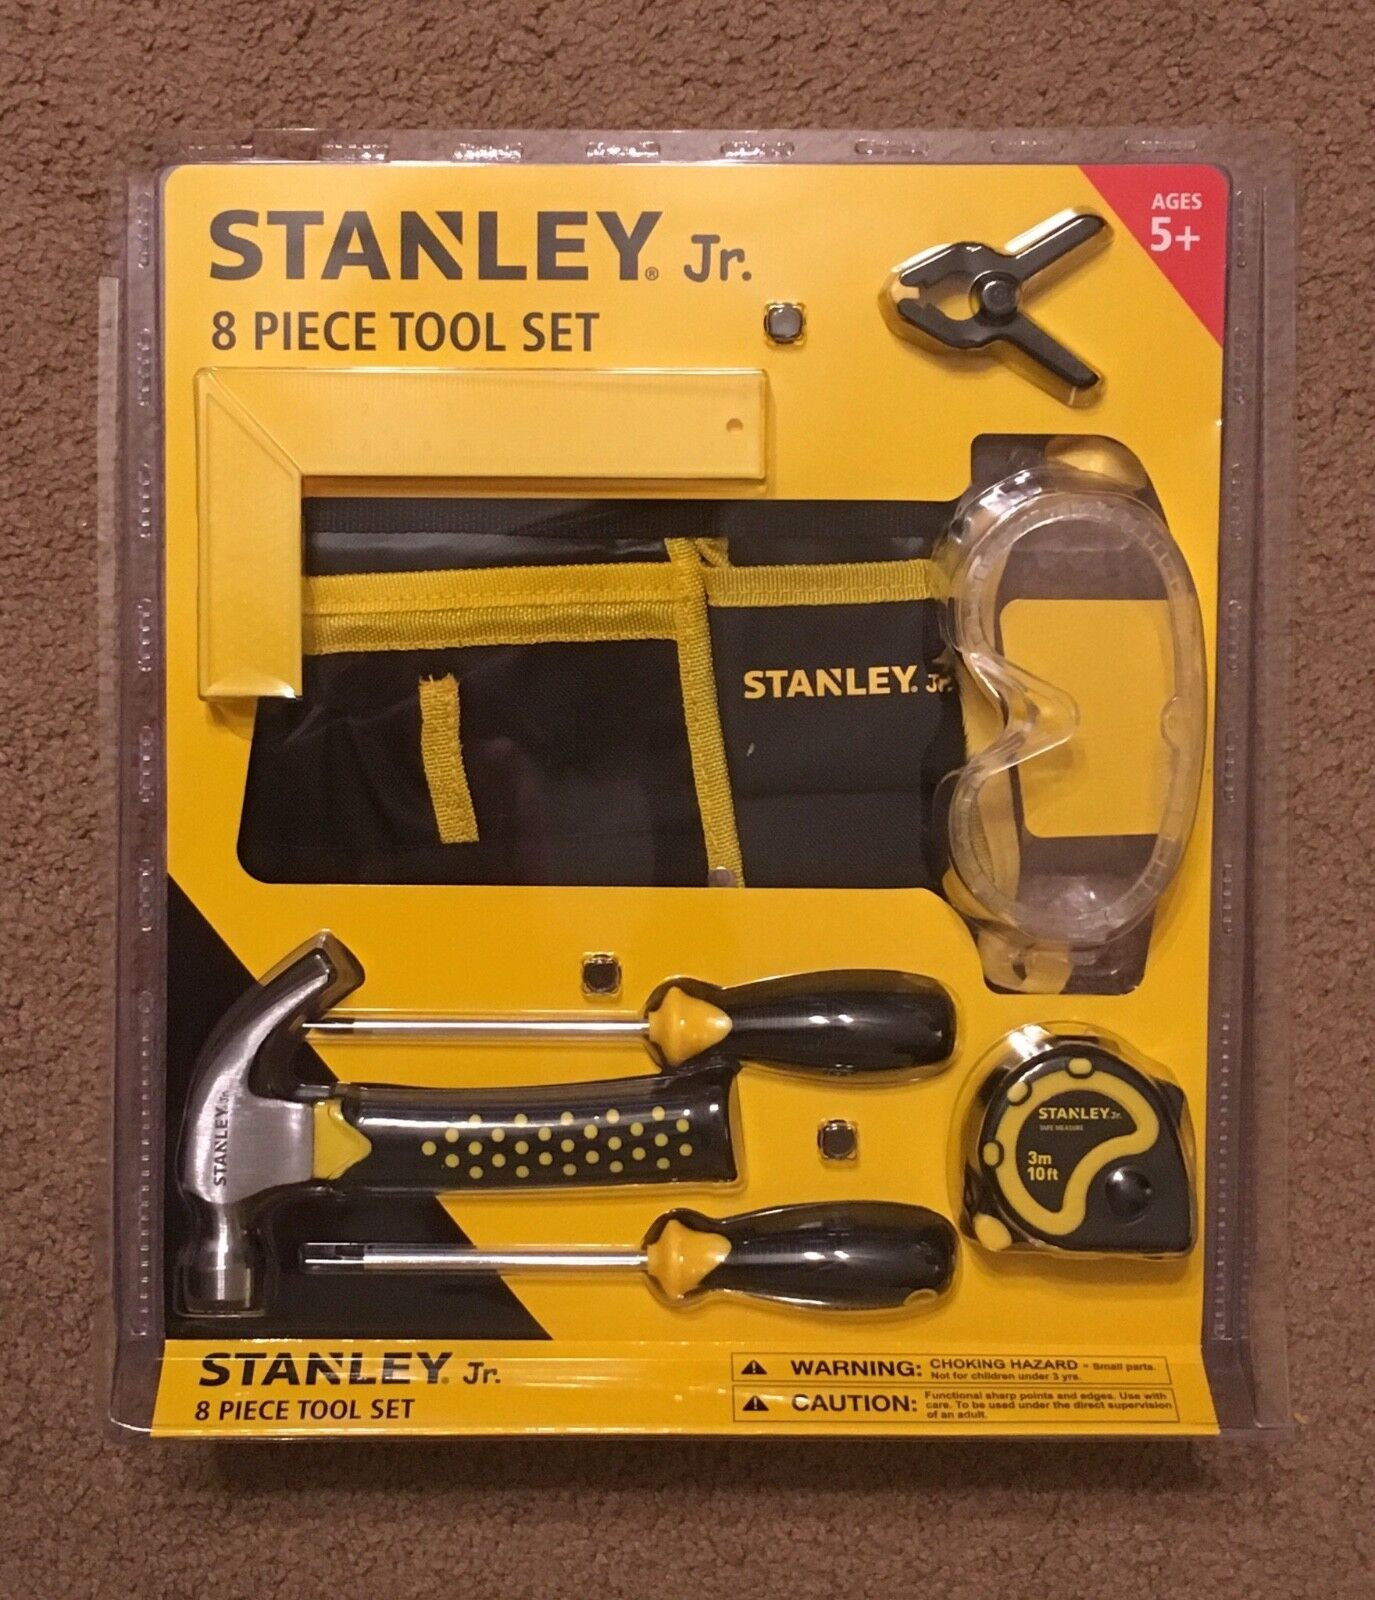 Stanley Jr 8 Piece Tool Set Kids Hammer Screwdriver Tool Bel